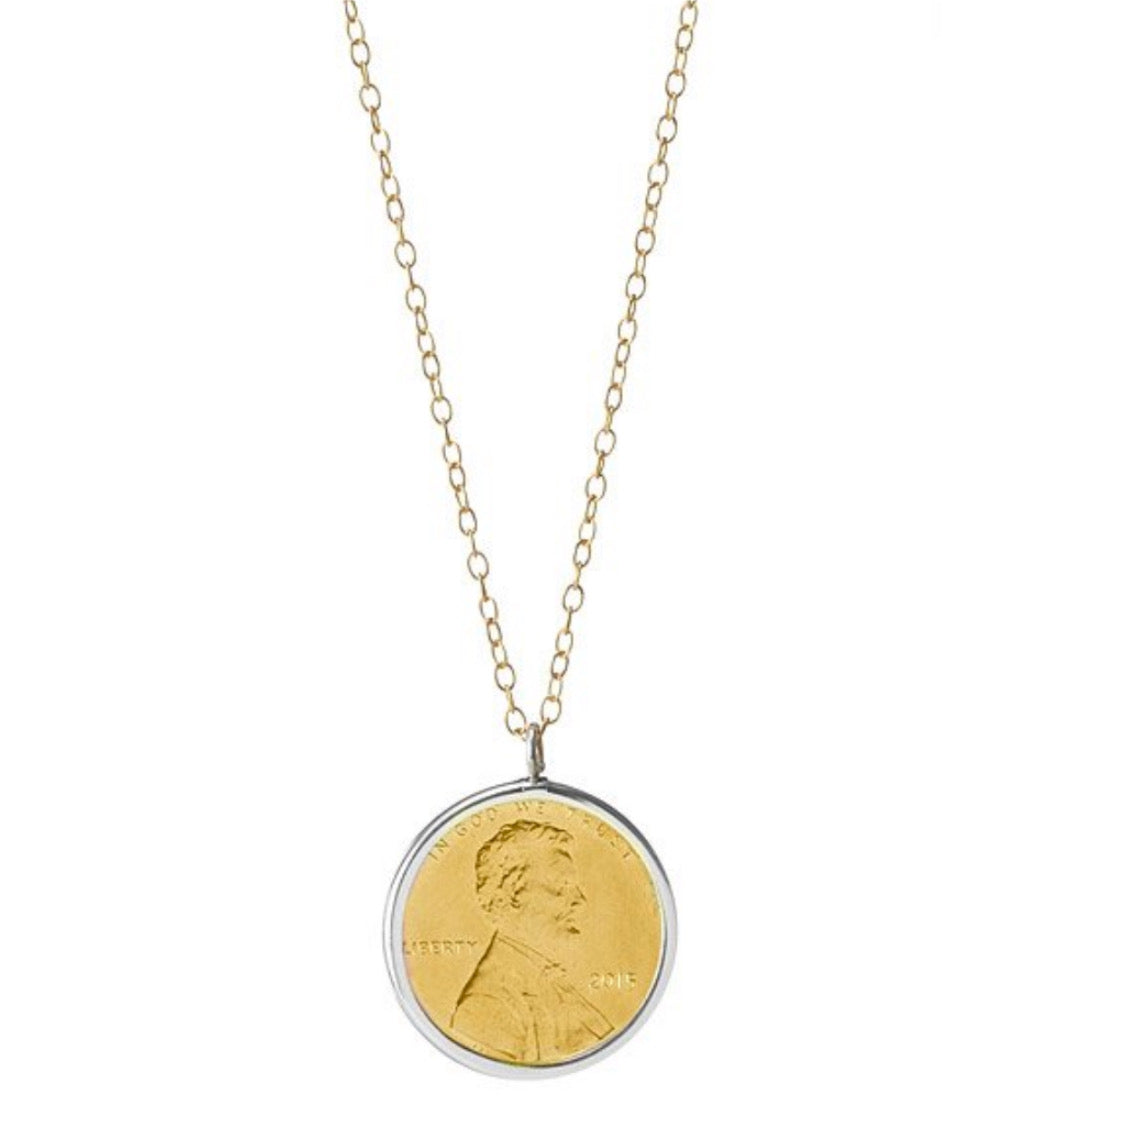 CUSTOMIZABLE Gold Plated Chain with YELLOW GOLD Plated Penny